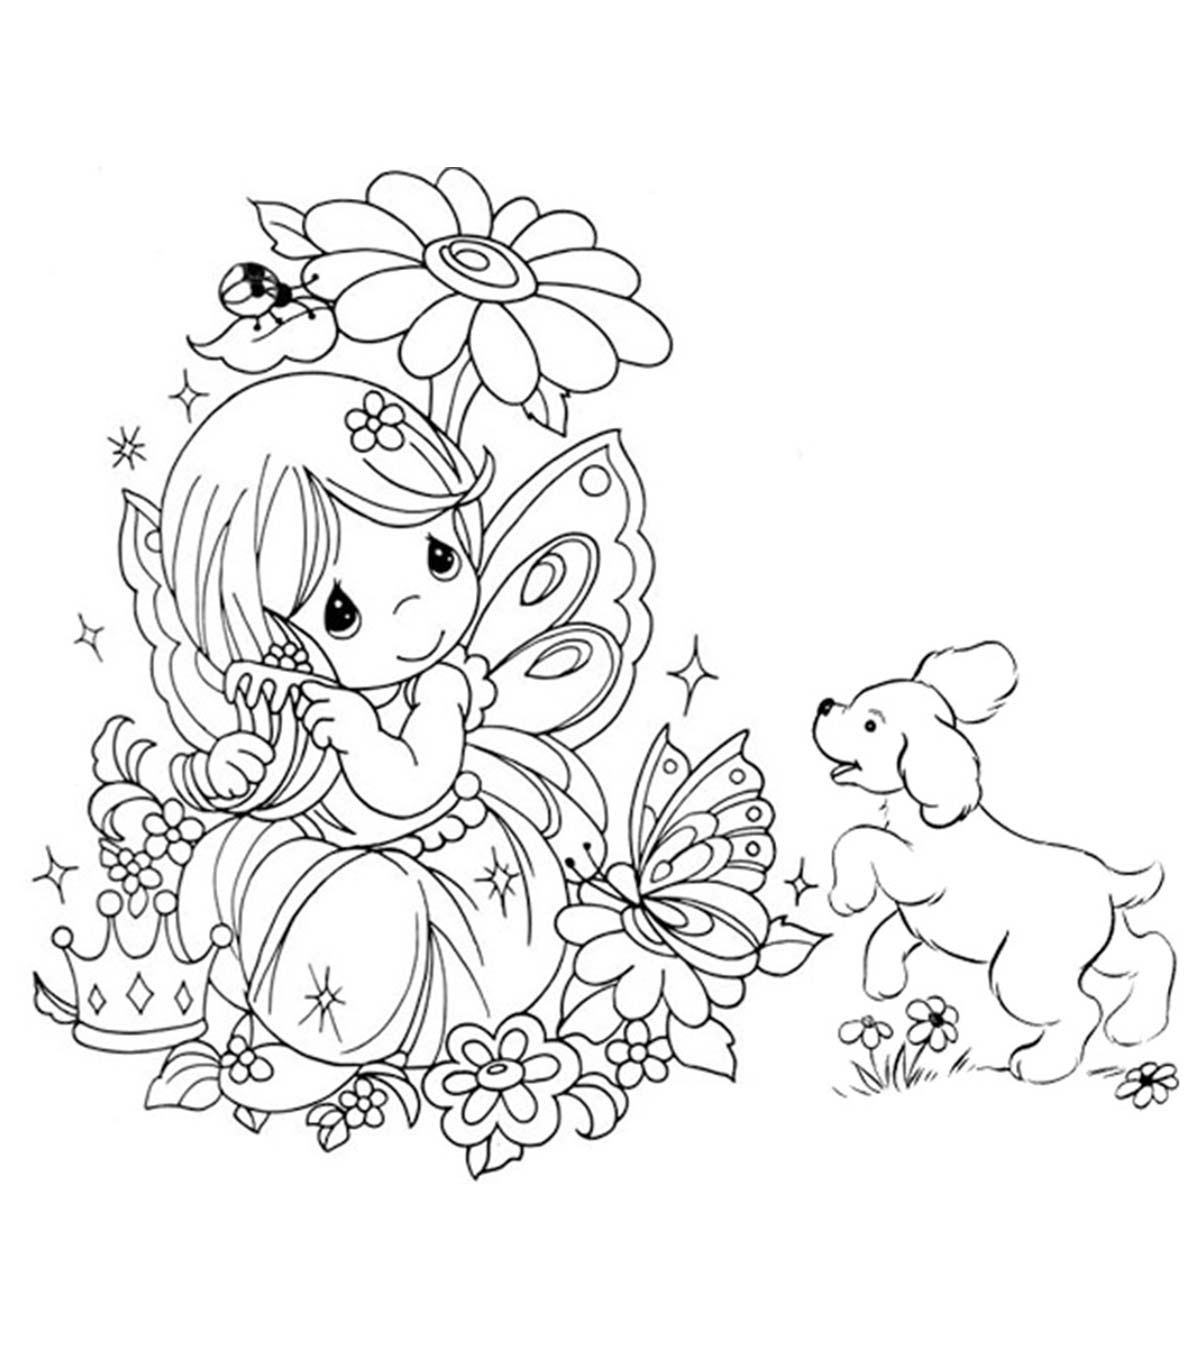 detailed beautiful fairy coloring pages pin by blue heron on art magical fairy coloring pages pages coloring fairy detailed beautiful